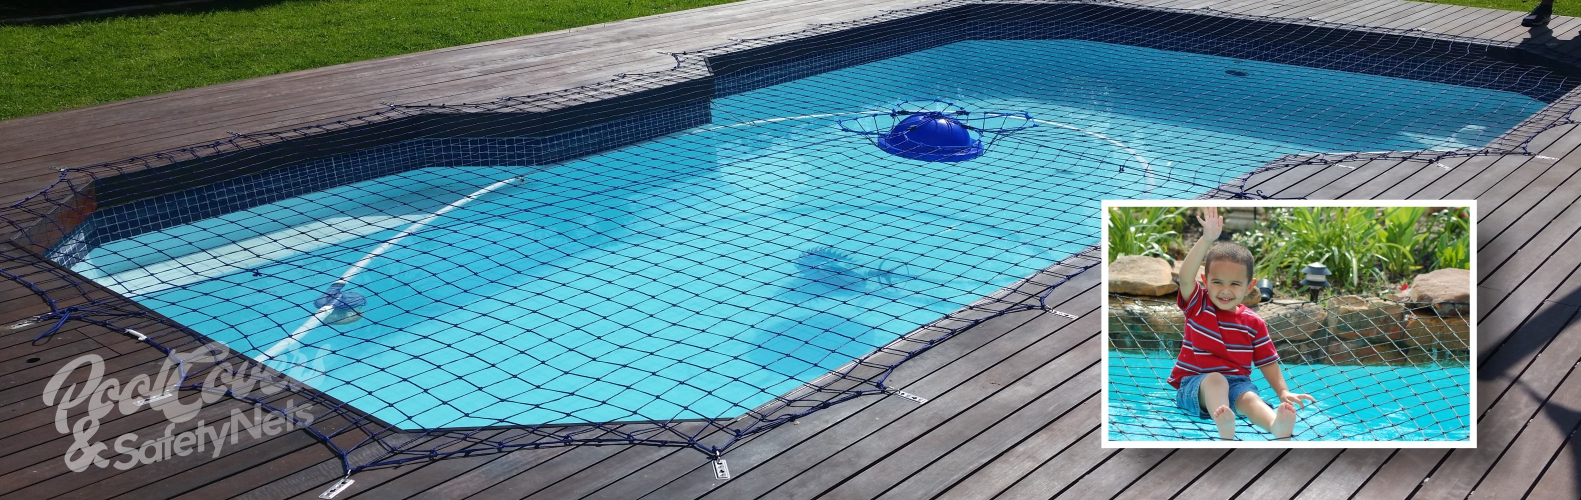 poolcovers-safety-nets-cape-town